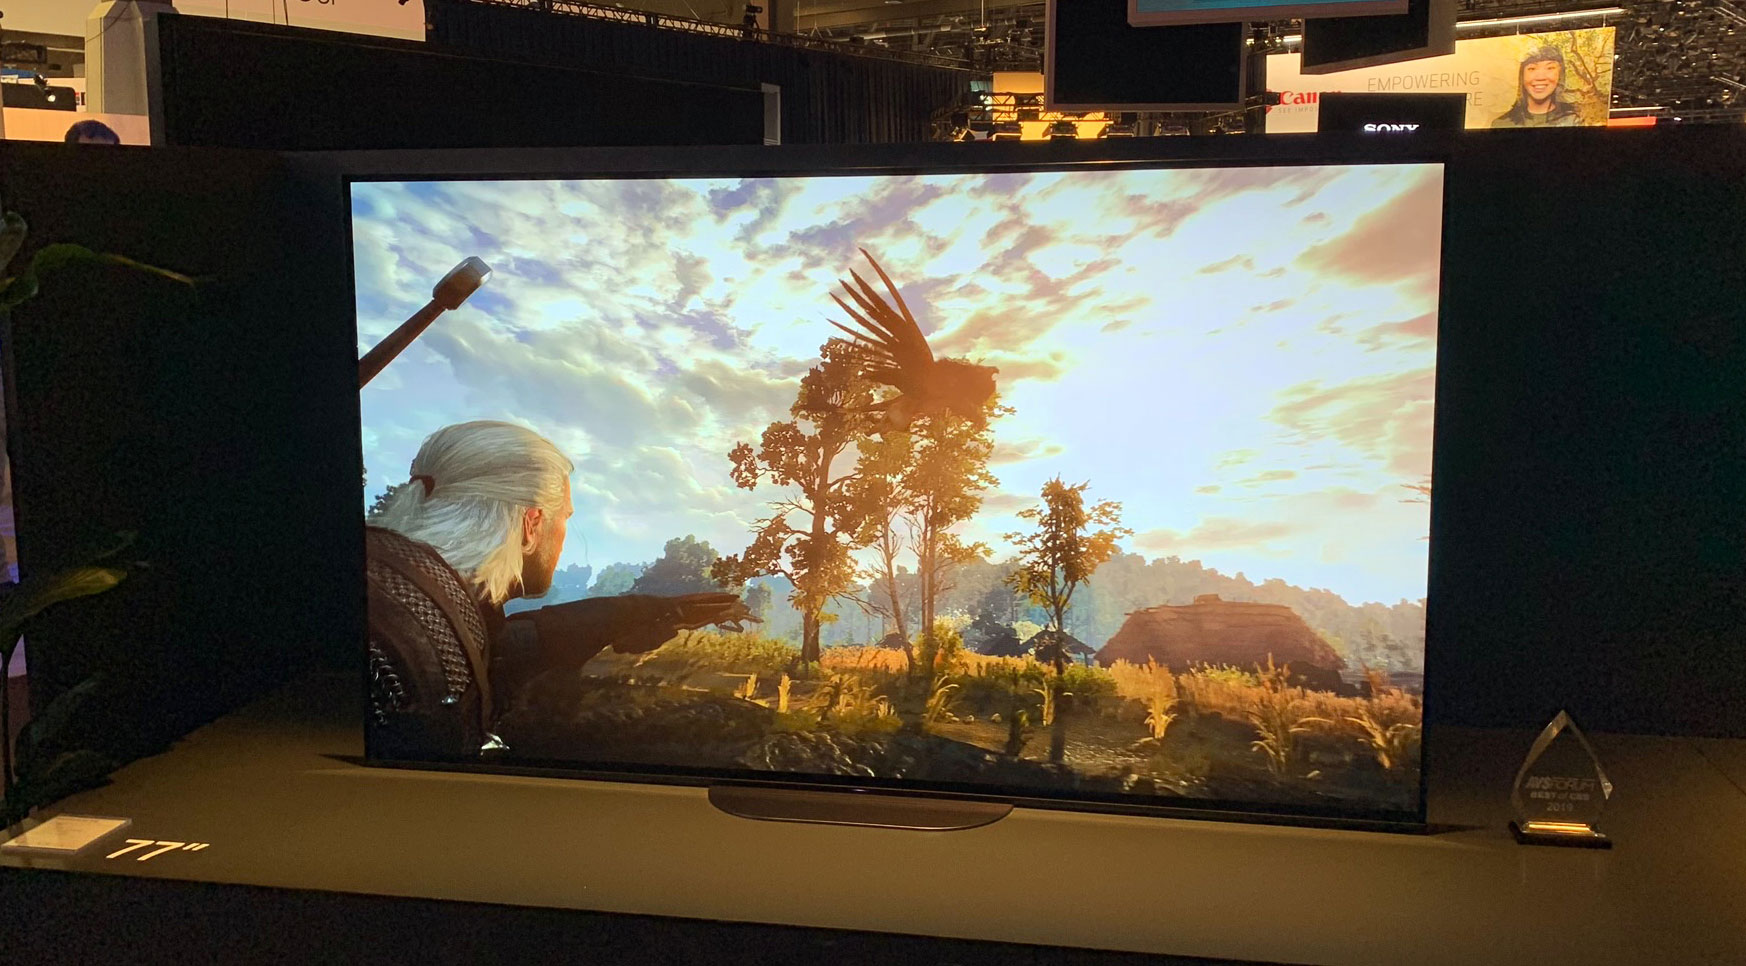 Hands-on with Sony's 2019 8K and 4K TVs - FlatpanelsHD